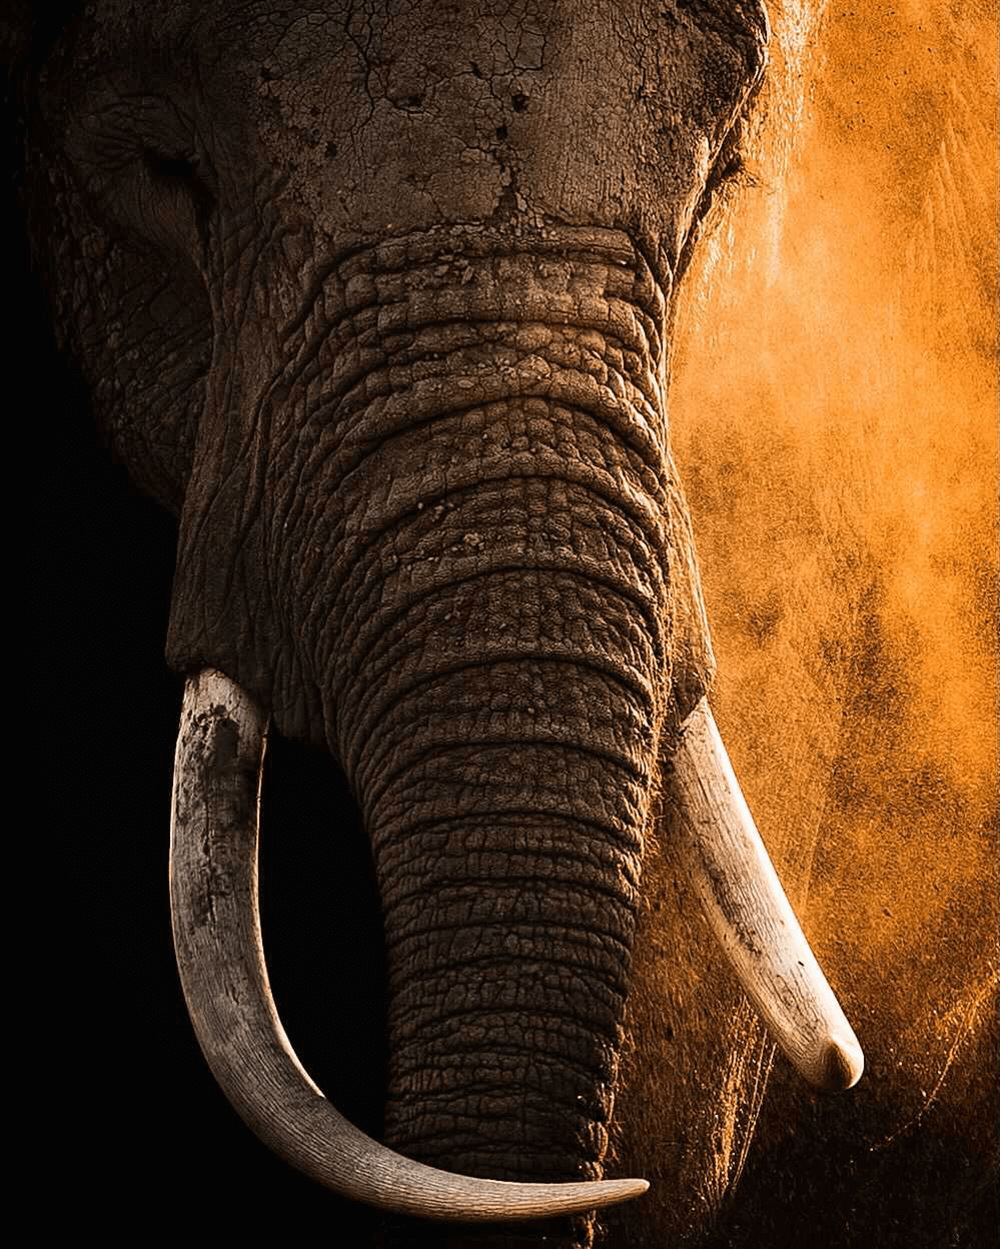 Wildlife photography by @hshphotos